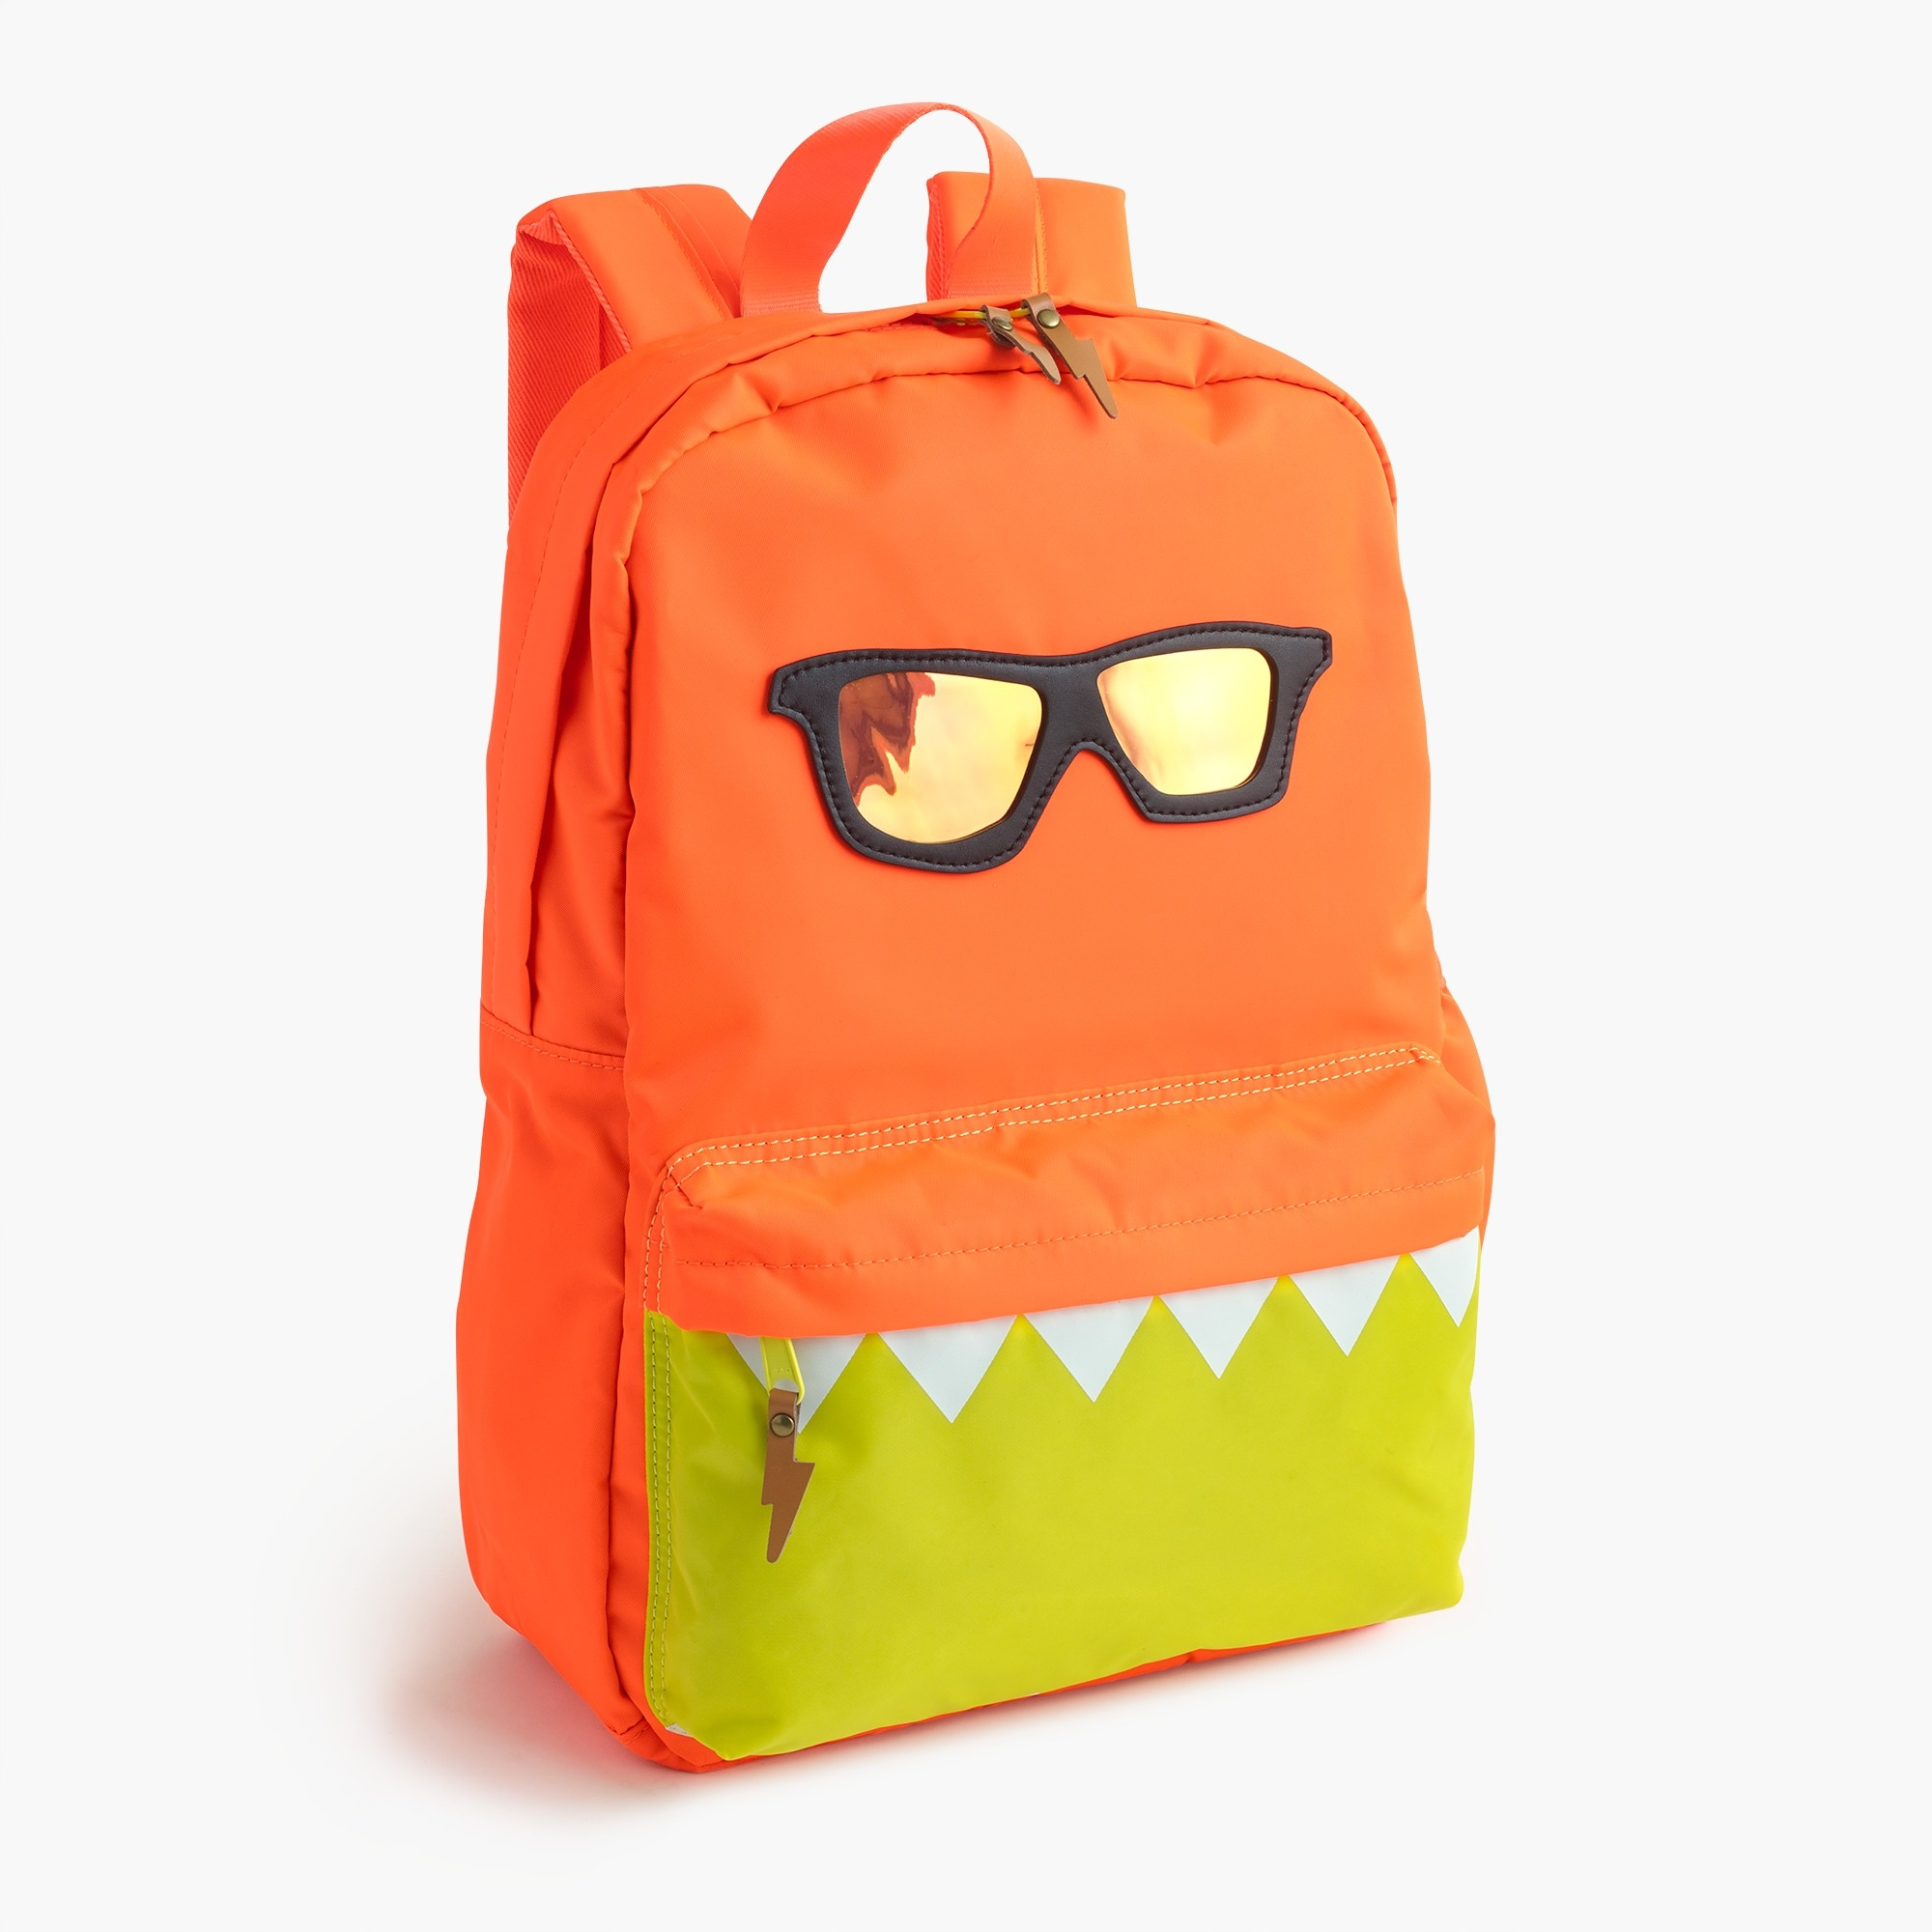 Image 1 for Max the Monster™ boys' backpack